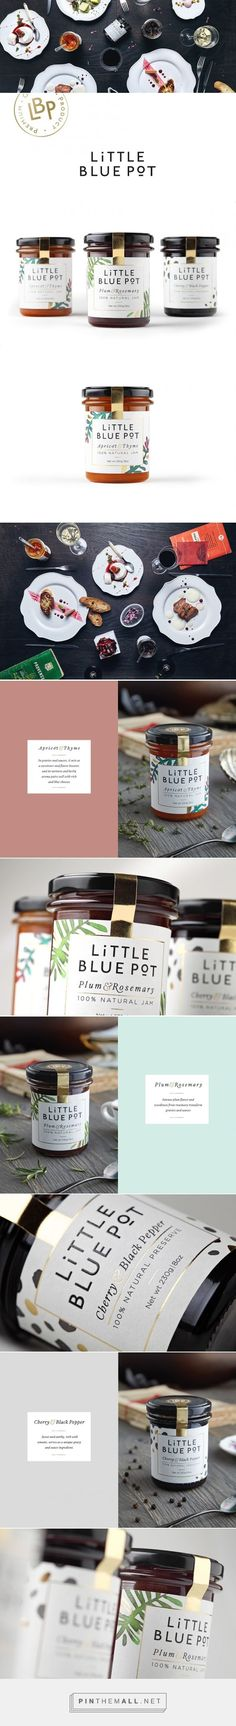 Graphic Design Inspiration | Packaging Design |